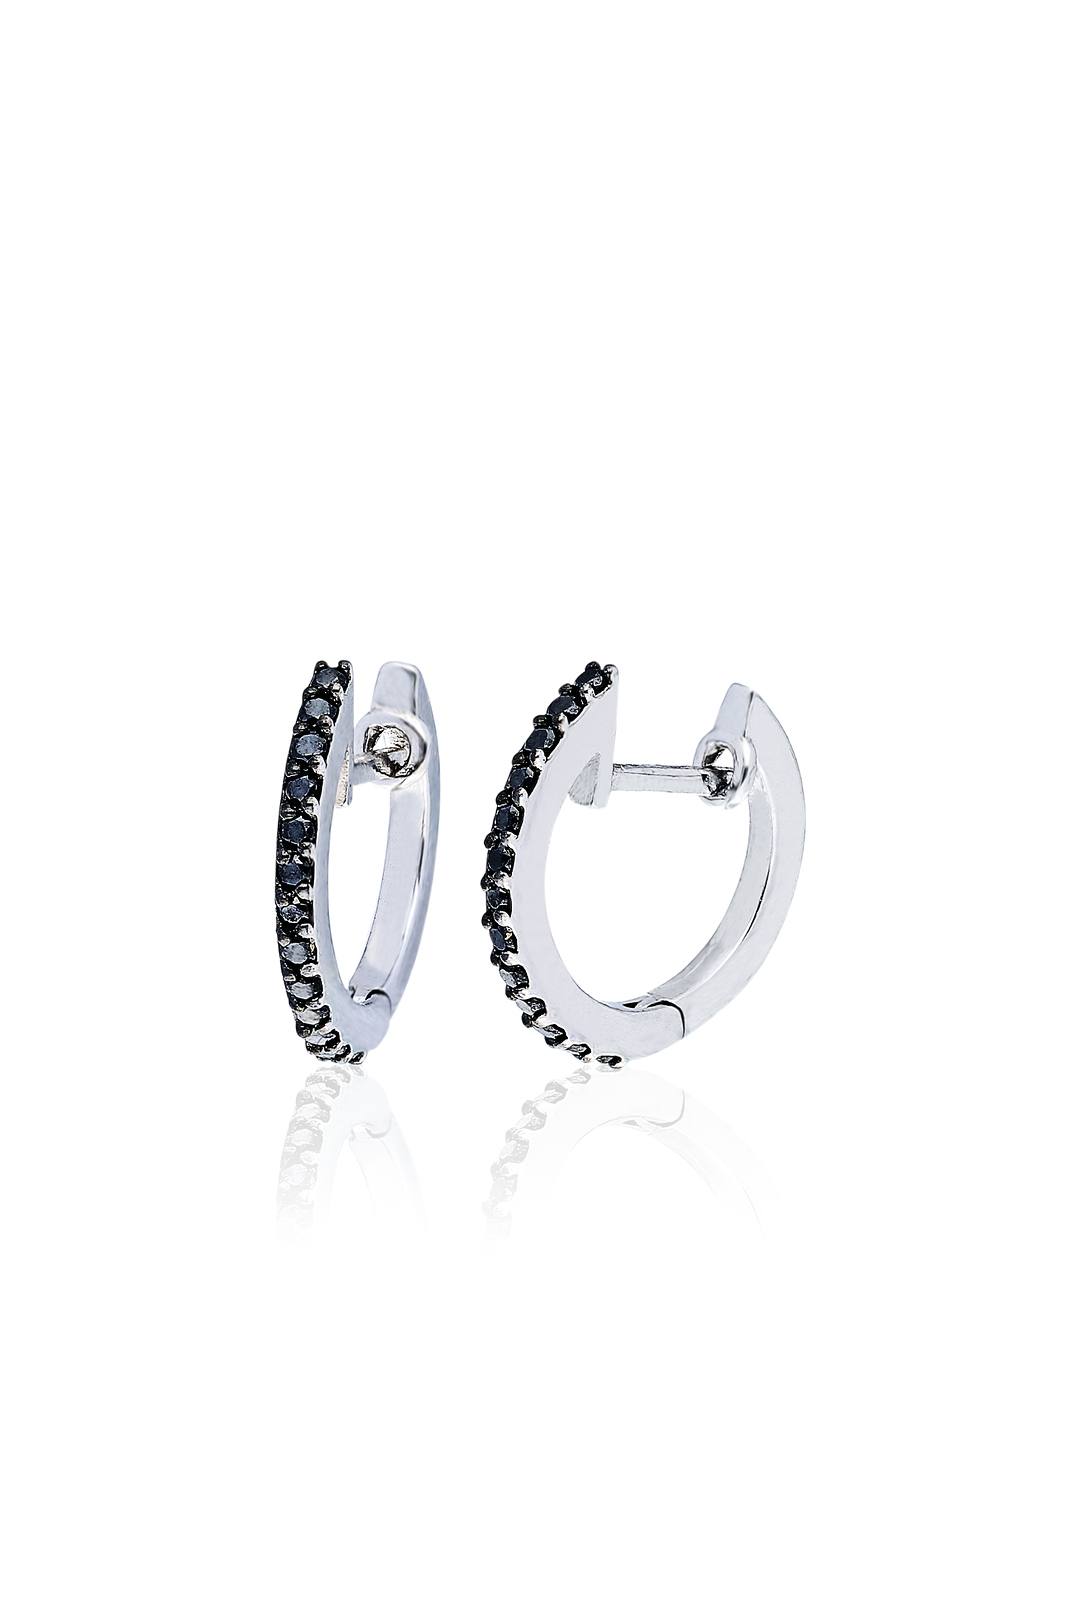 MINI HOOP BLACK DIAMOND EARRING